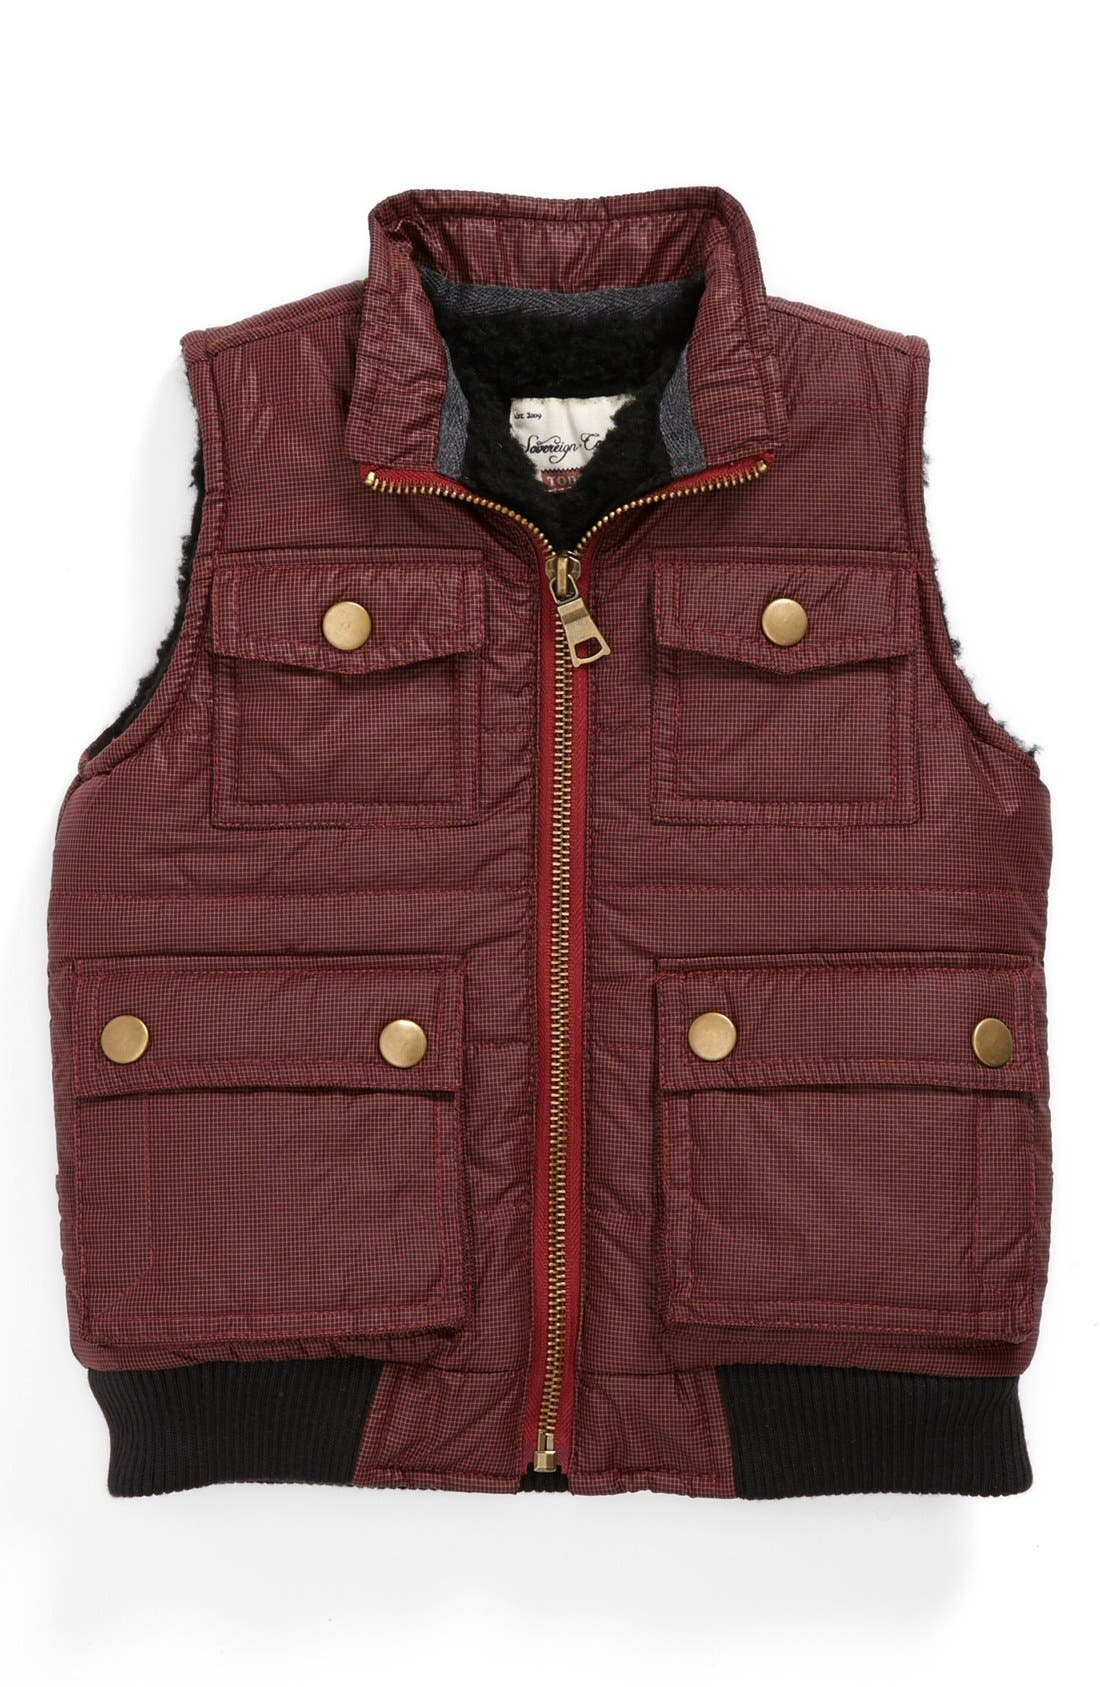 Alternate Image 1 Selected - Sovereign Code 'Holloran' Puffy Vest (Toddler Boys)